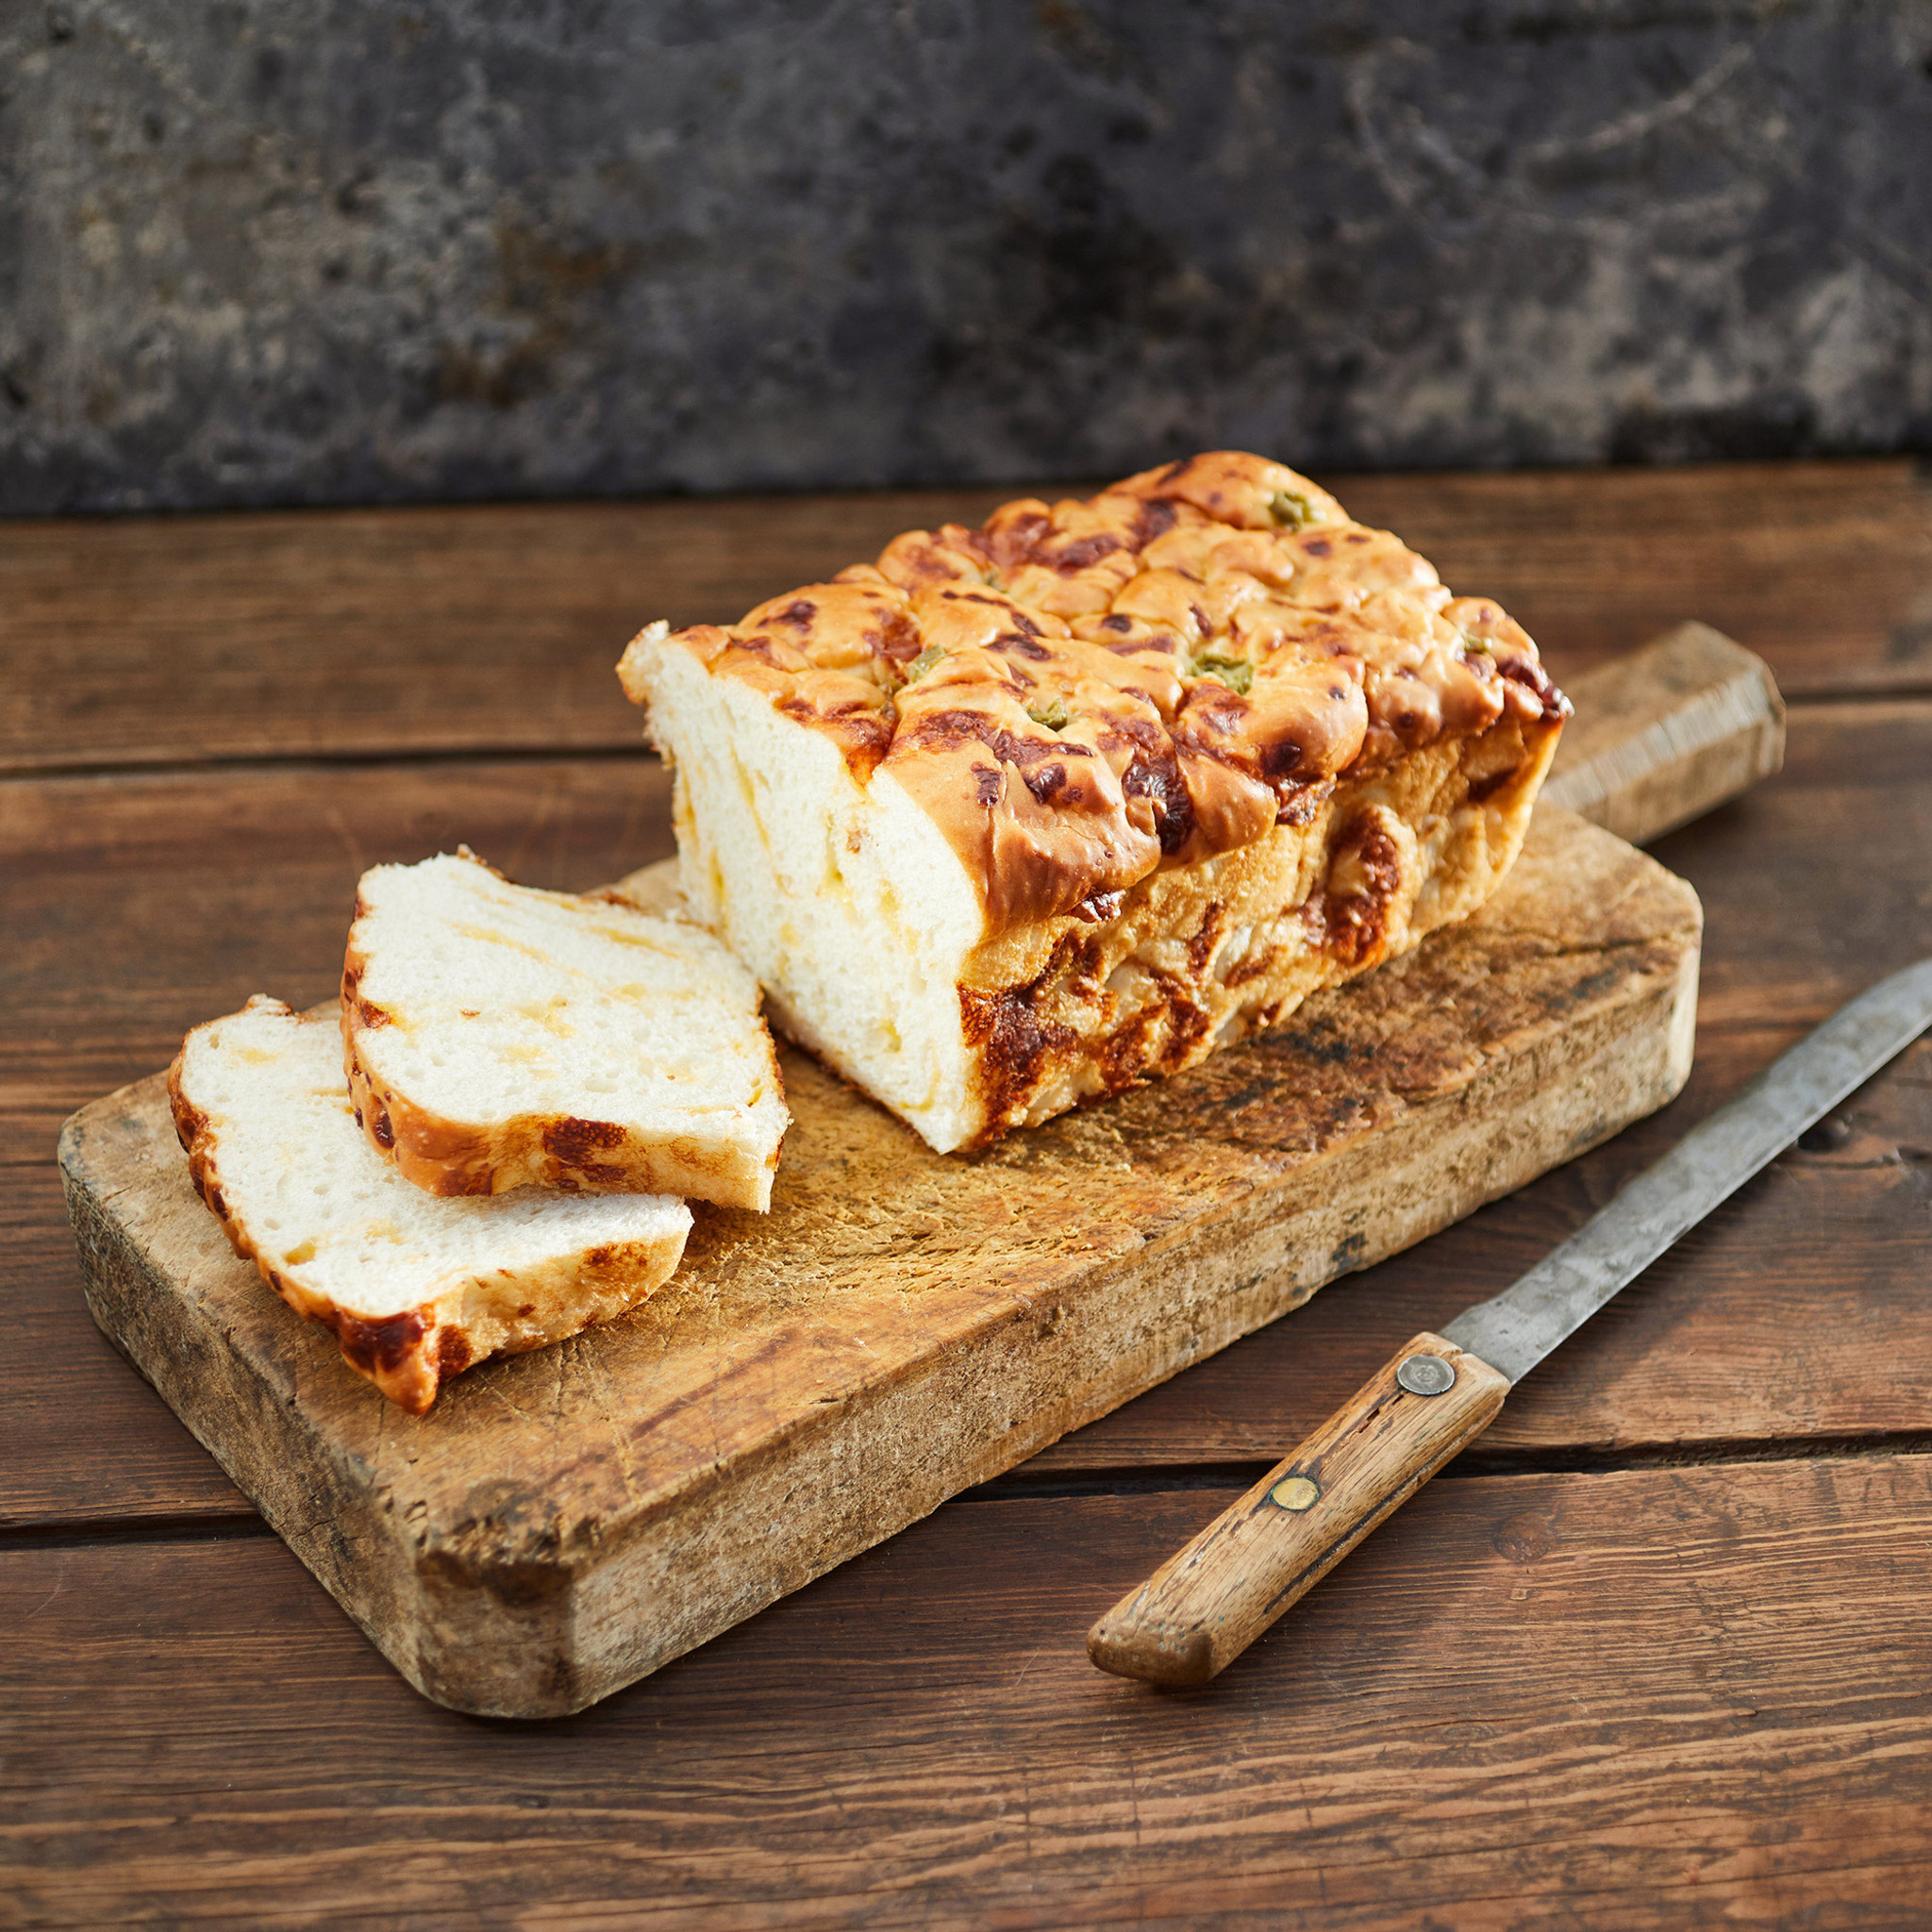 Goode Co's homemade Jalapeño Cheese Bread sliced and sitting on a wooden cutting board.